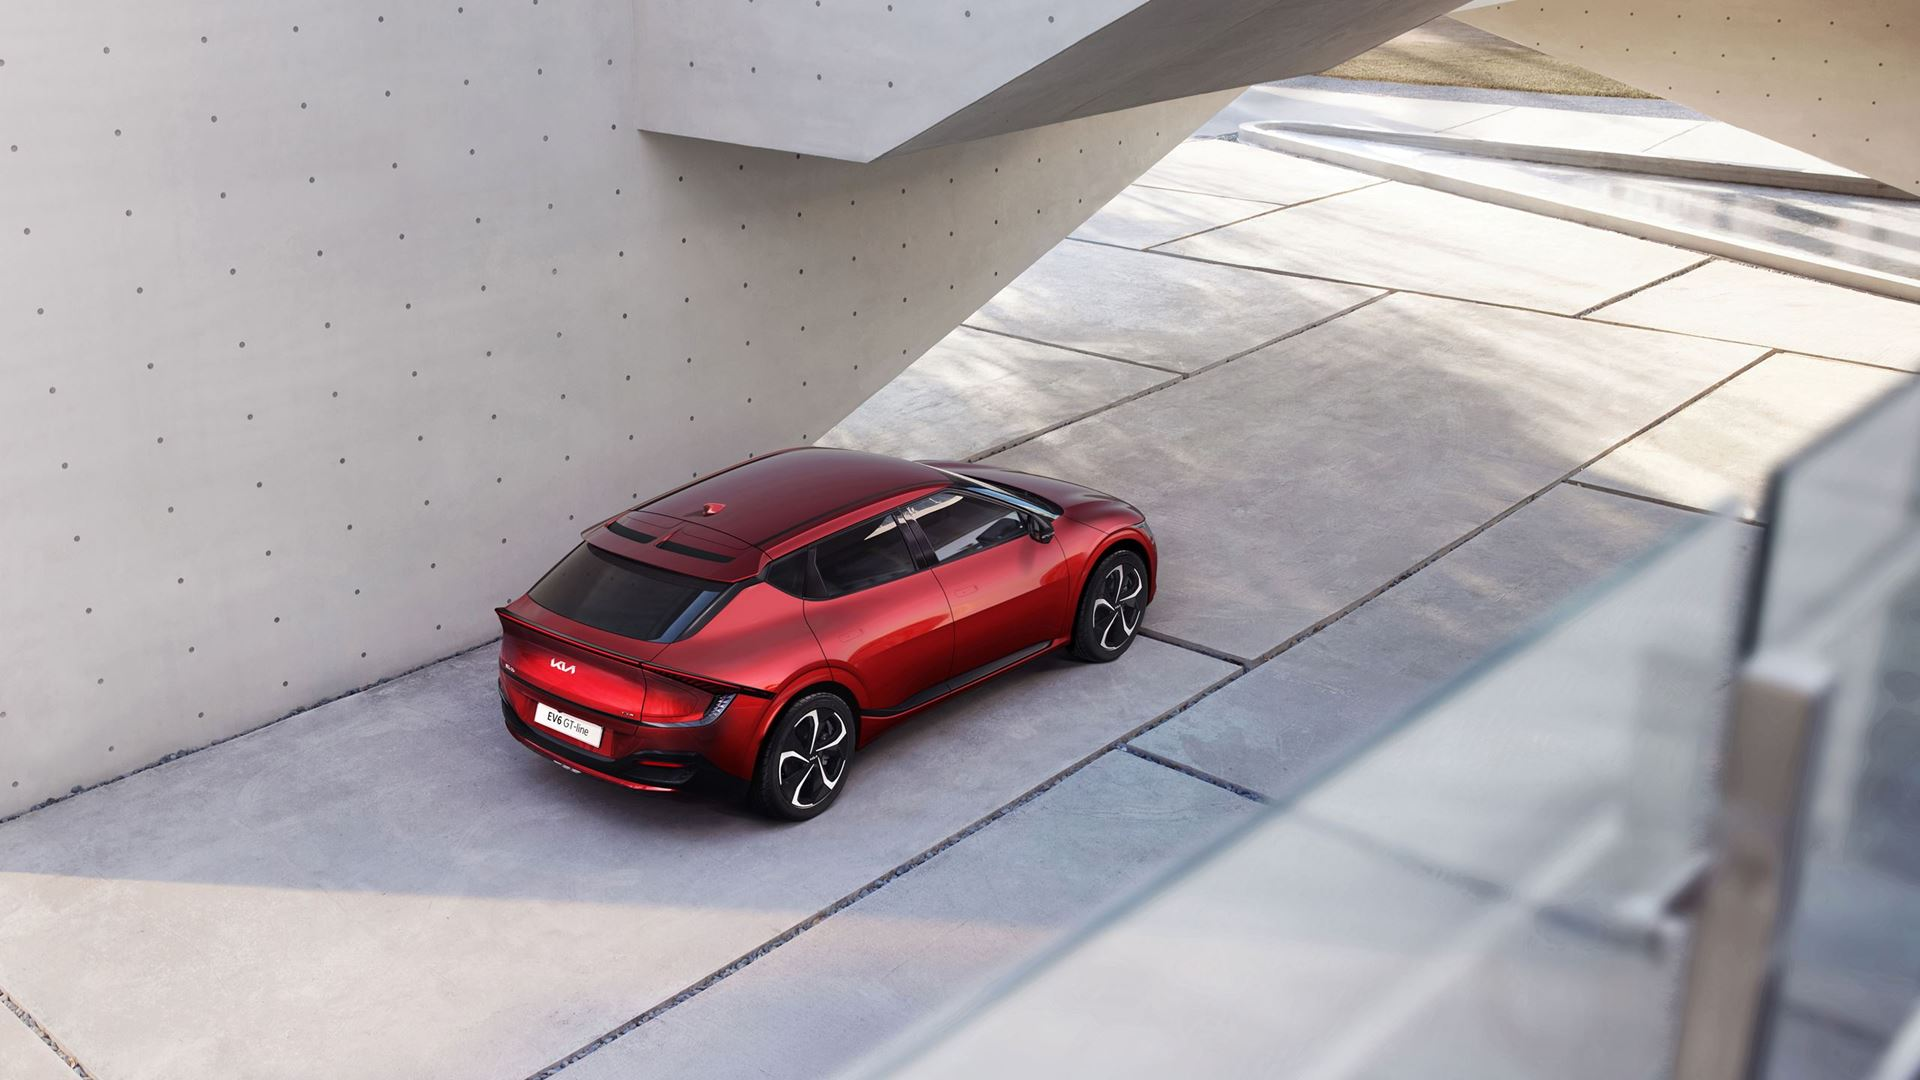 Kia EV6 redefines boundaries of electric mobility with inspiring design, exhilarating performance and innovative space - Image 1